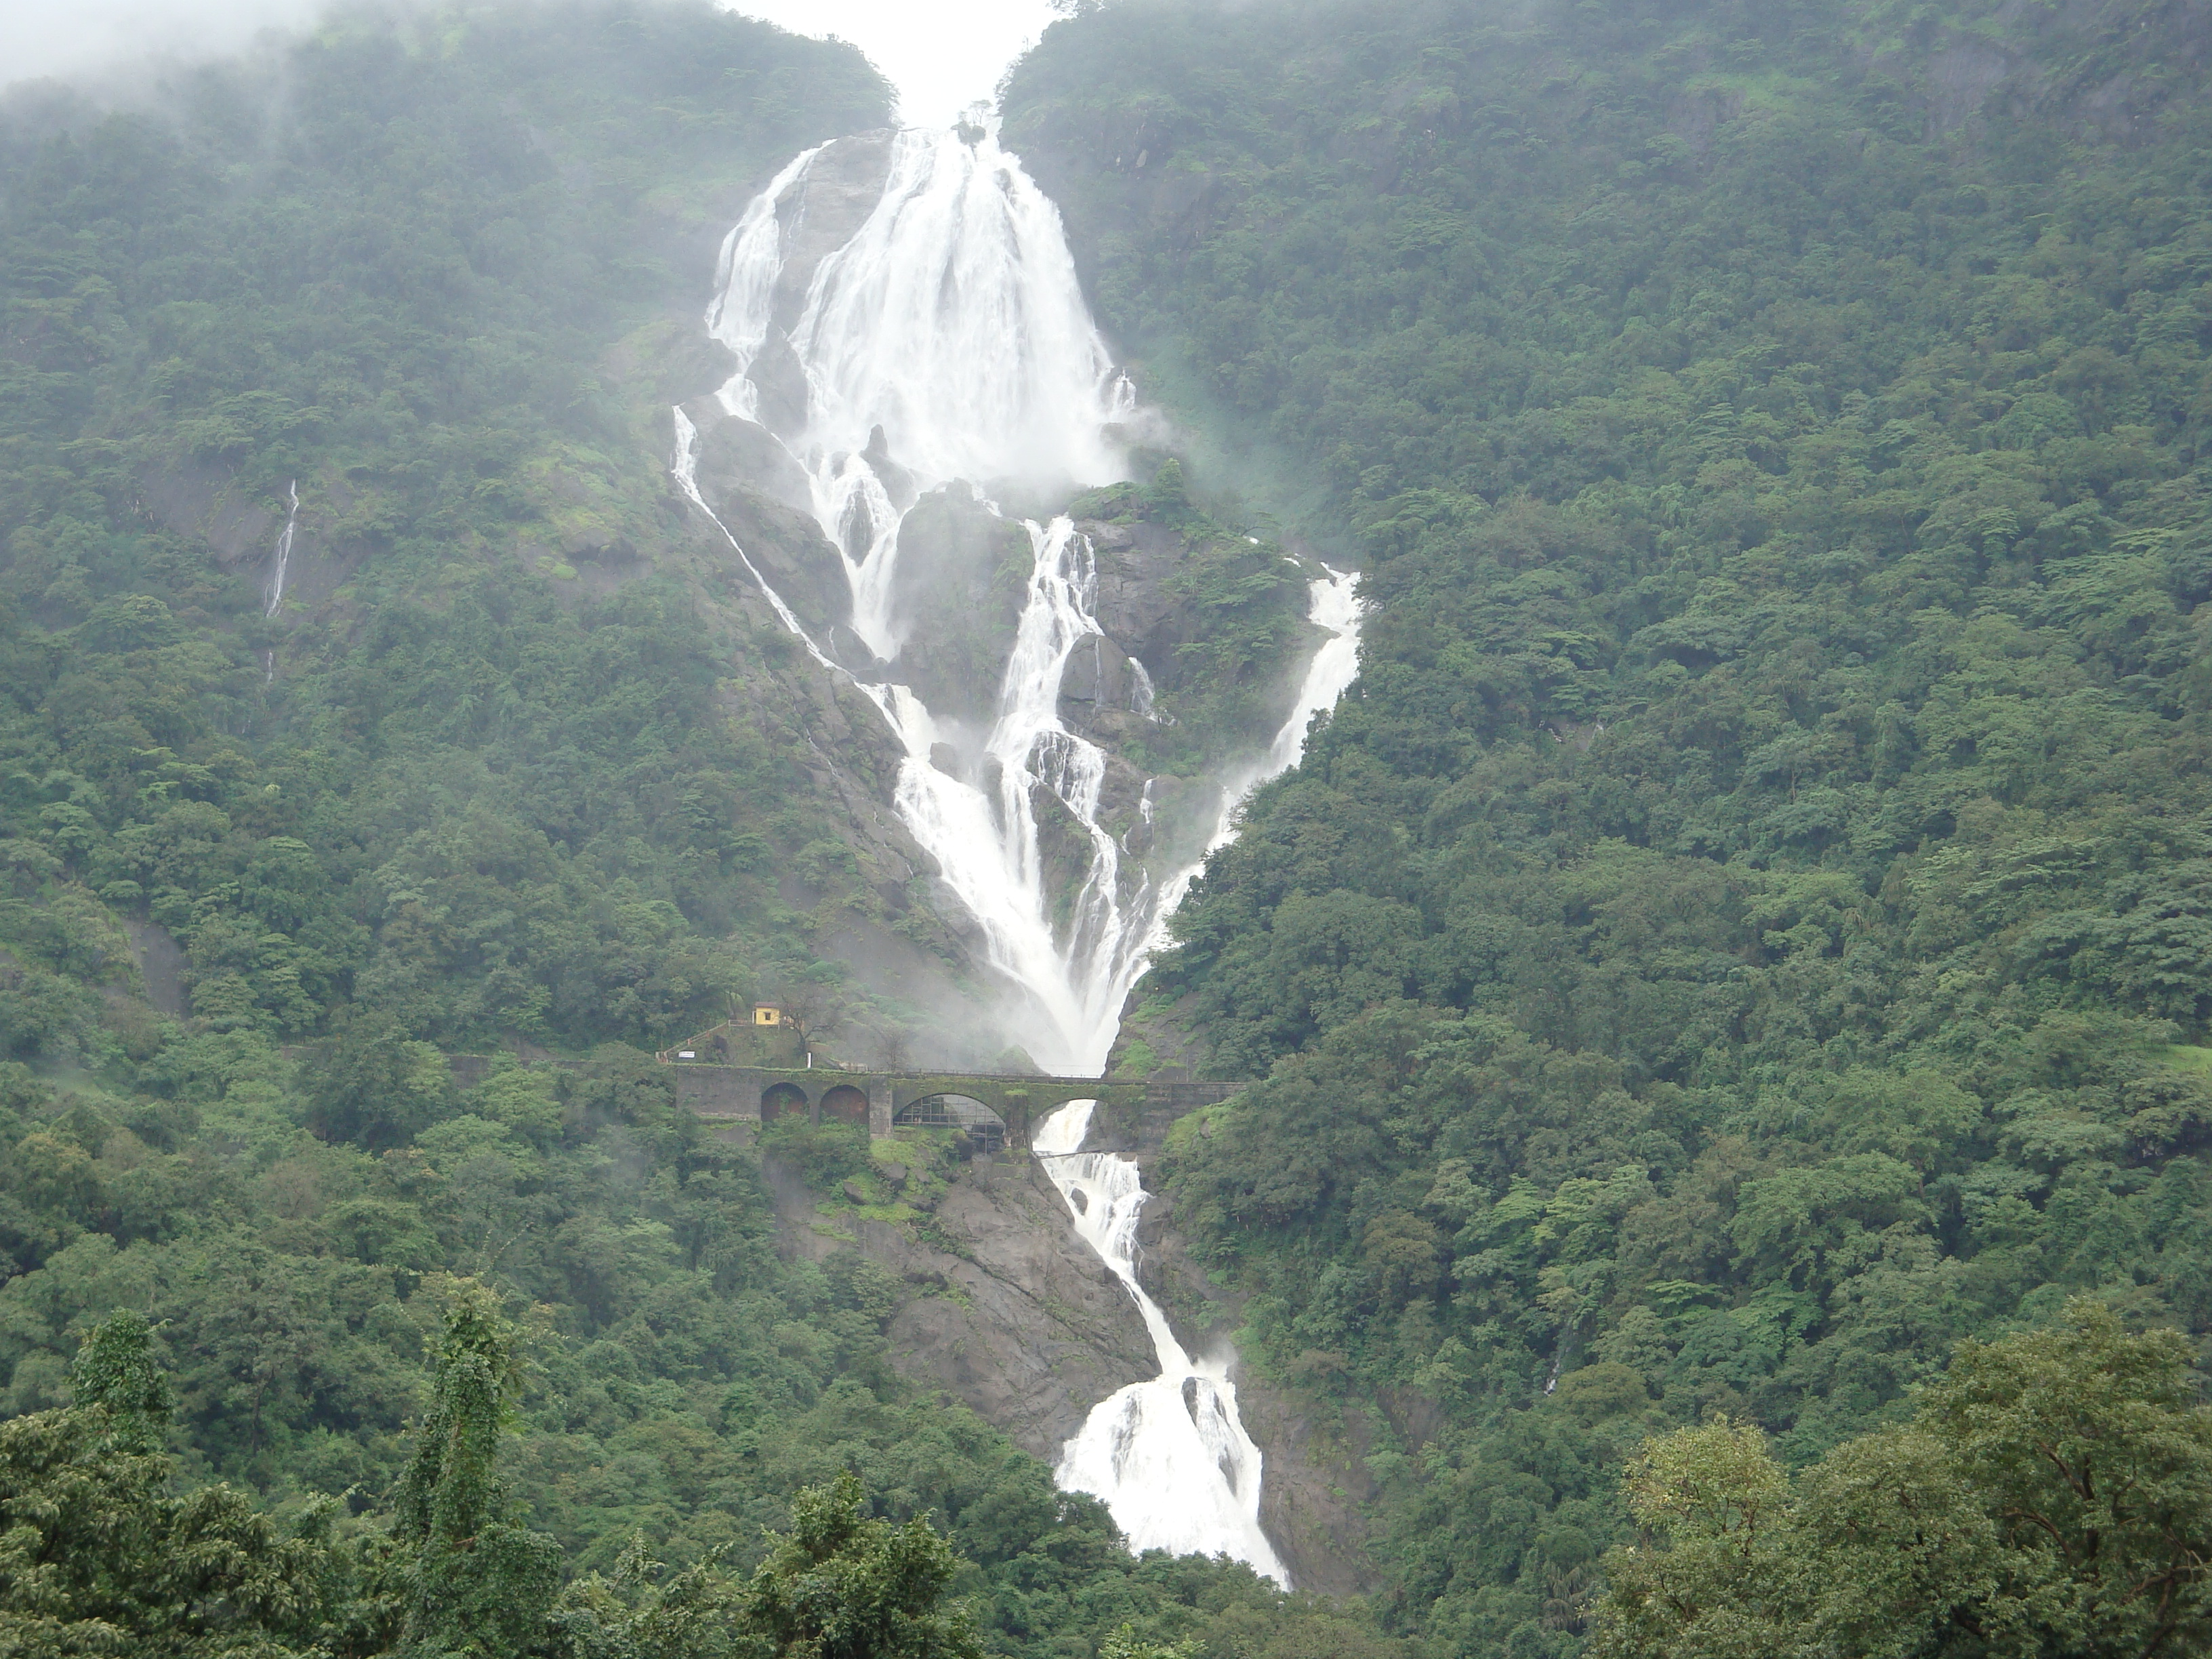 Dudhsagar Falls, during Monsoon, with the trees of the forest surrounding it.